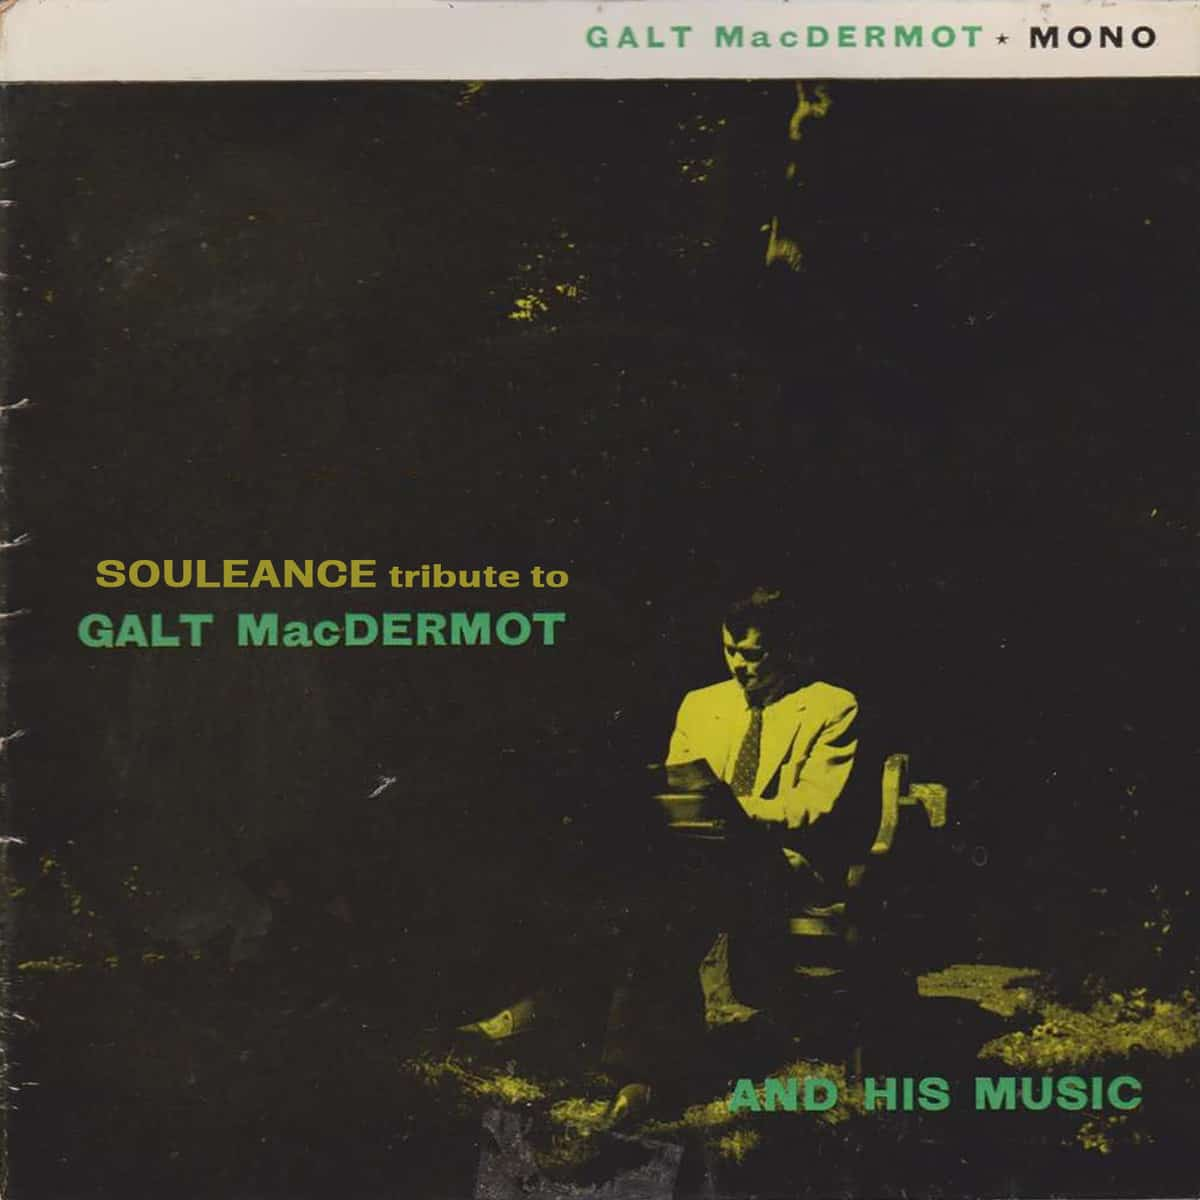 Souleance Tribute to Galt MacDermot • free album